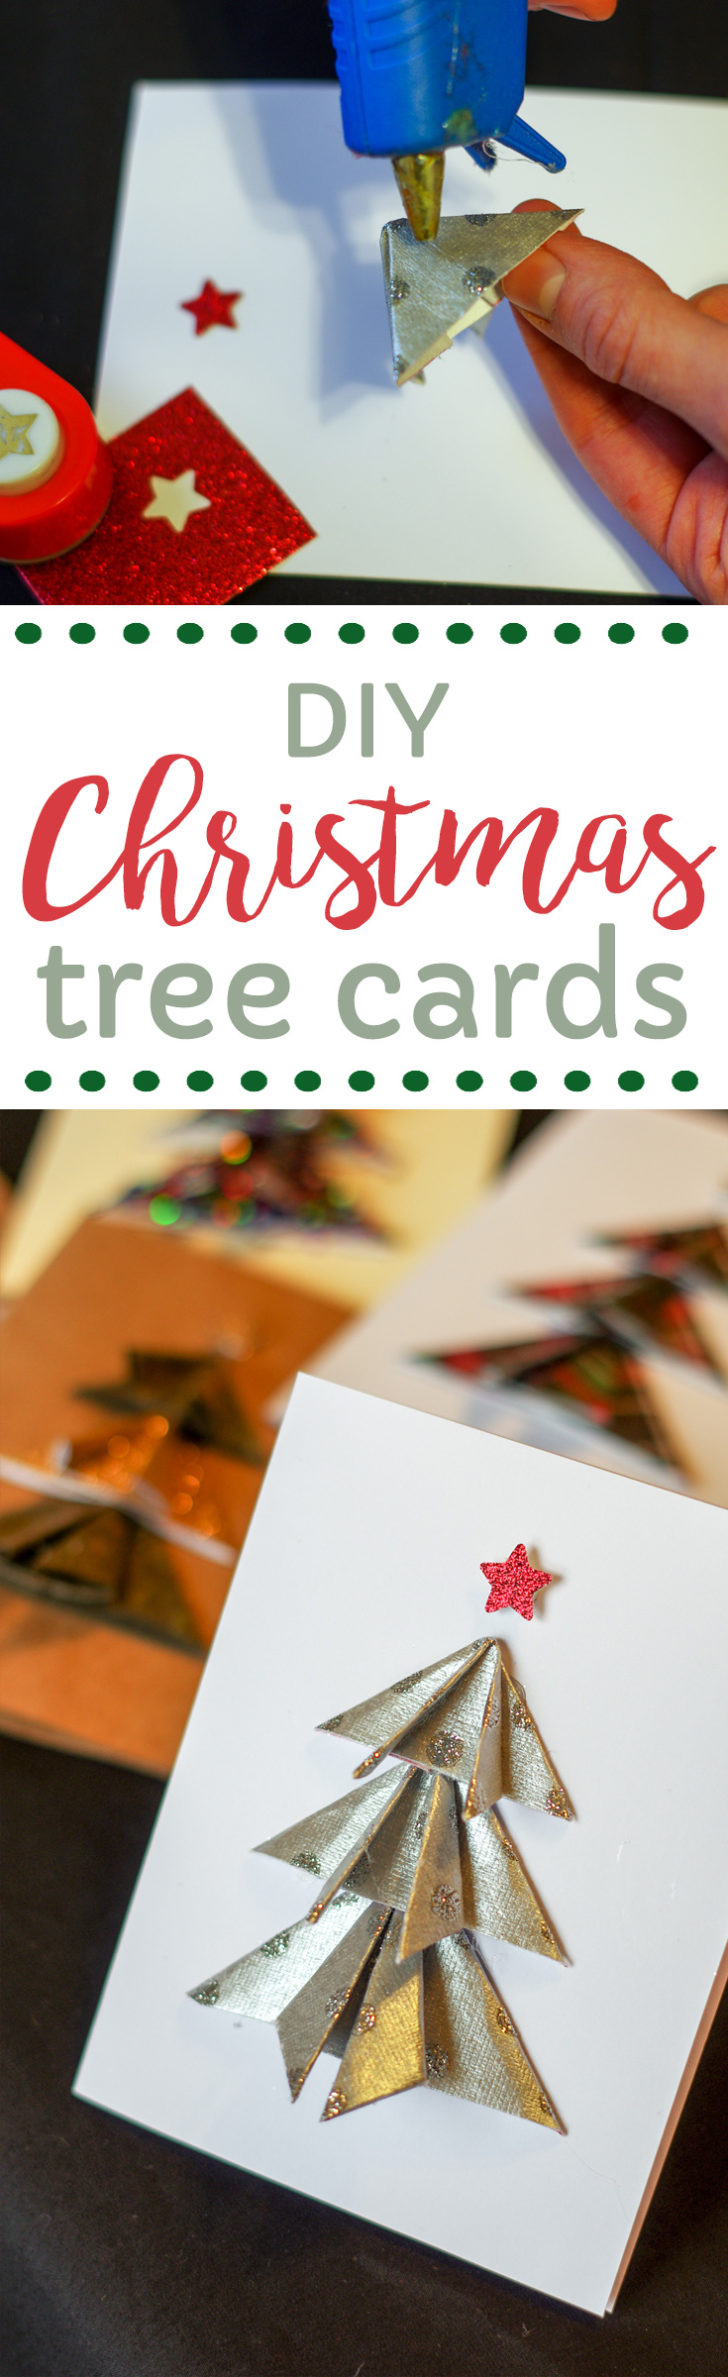 DIY Christmas cards with trees. The perfect handmade craft for the holidays.